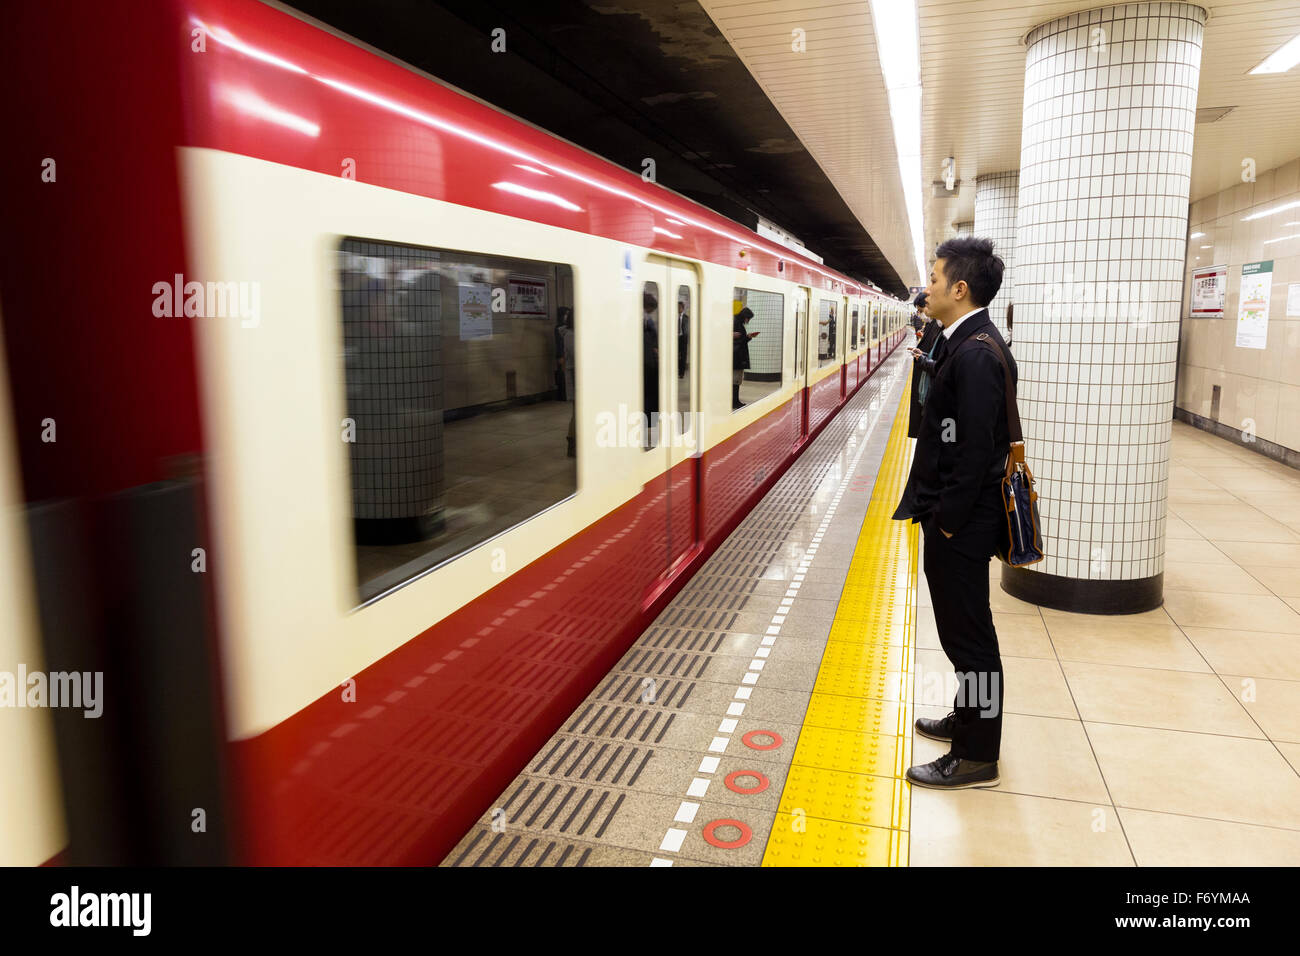 A Japanese man waiting in the underground for a passing train - Stock Image